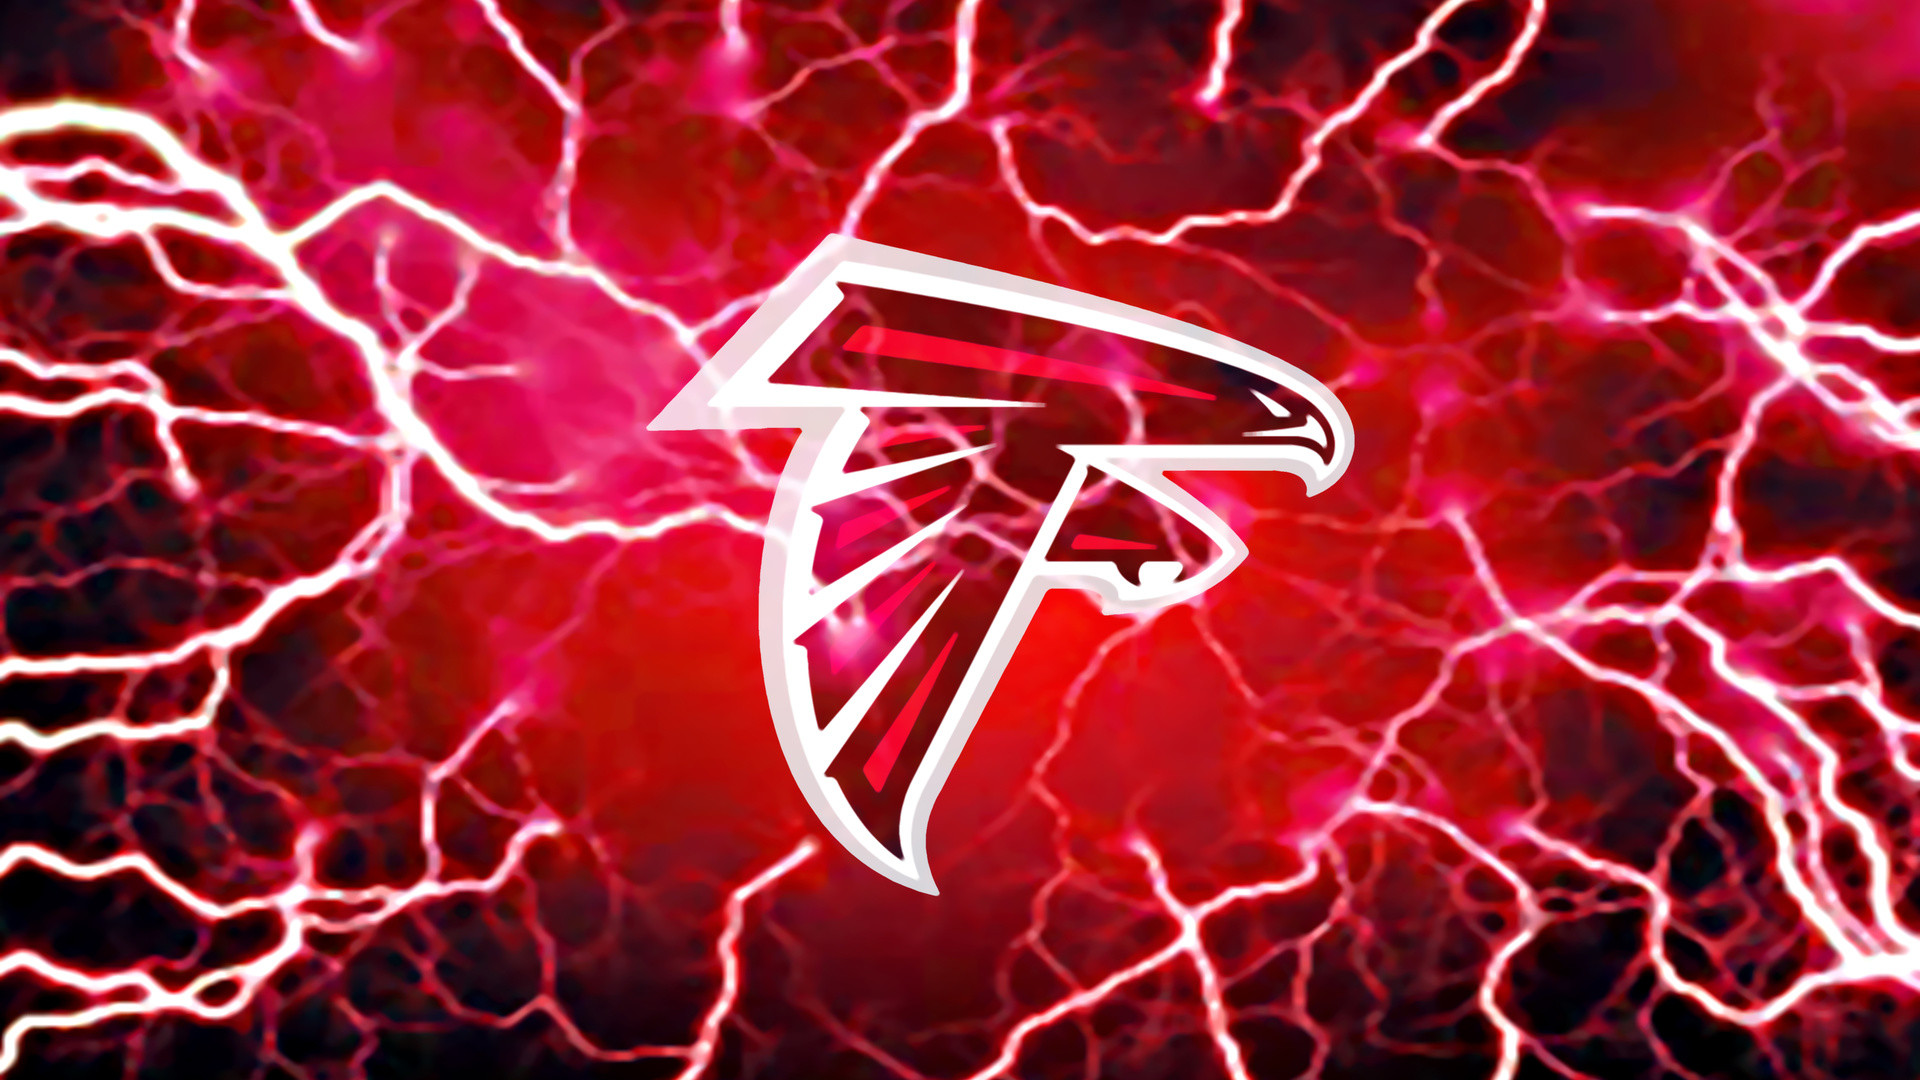 Falcons Wallpaper: Atlanta Falcons Desktop Wallpaper ·① WallpaperTag